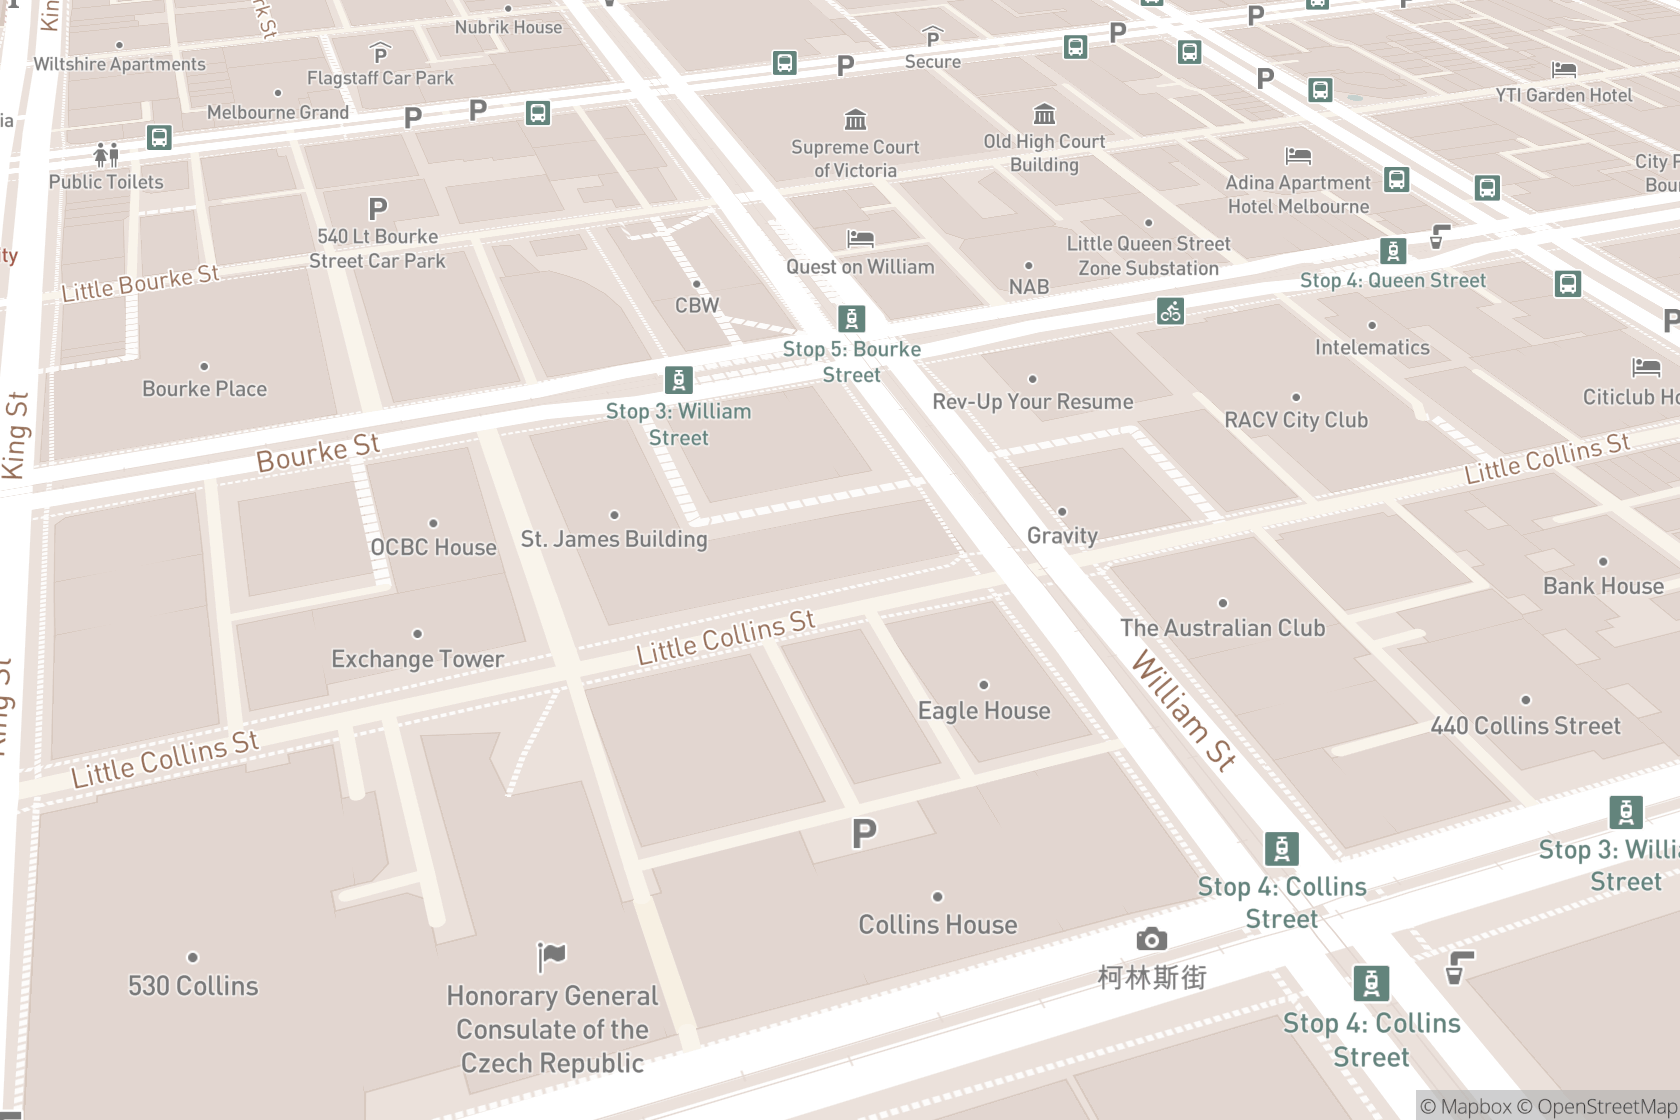 Clear Skincare Clinic - Little Collins Street map location